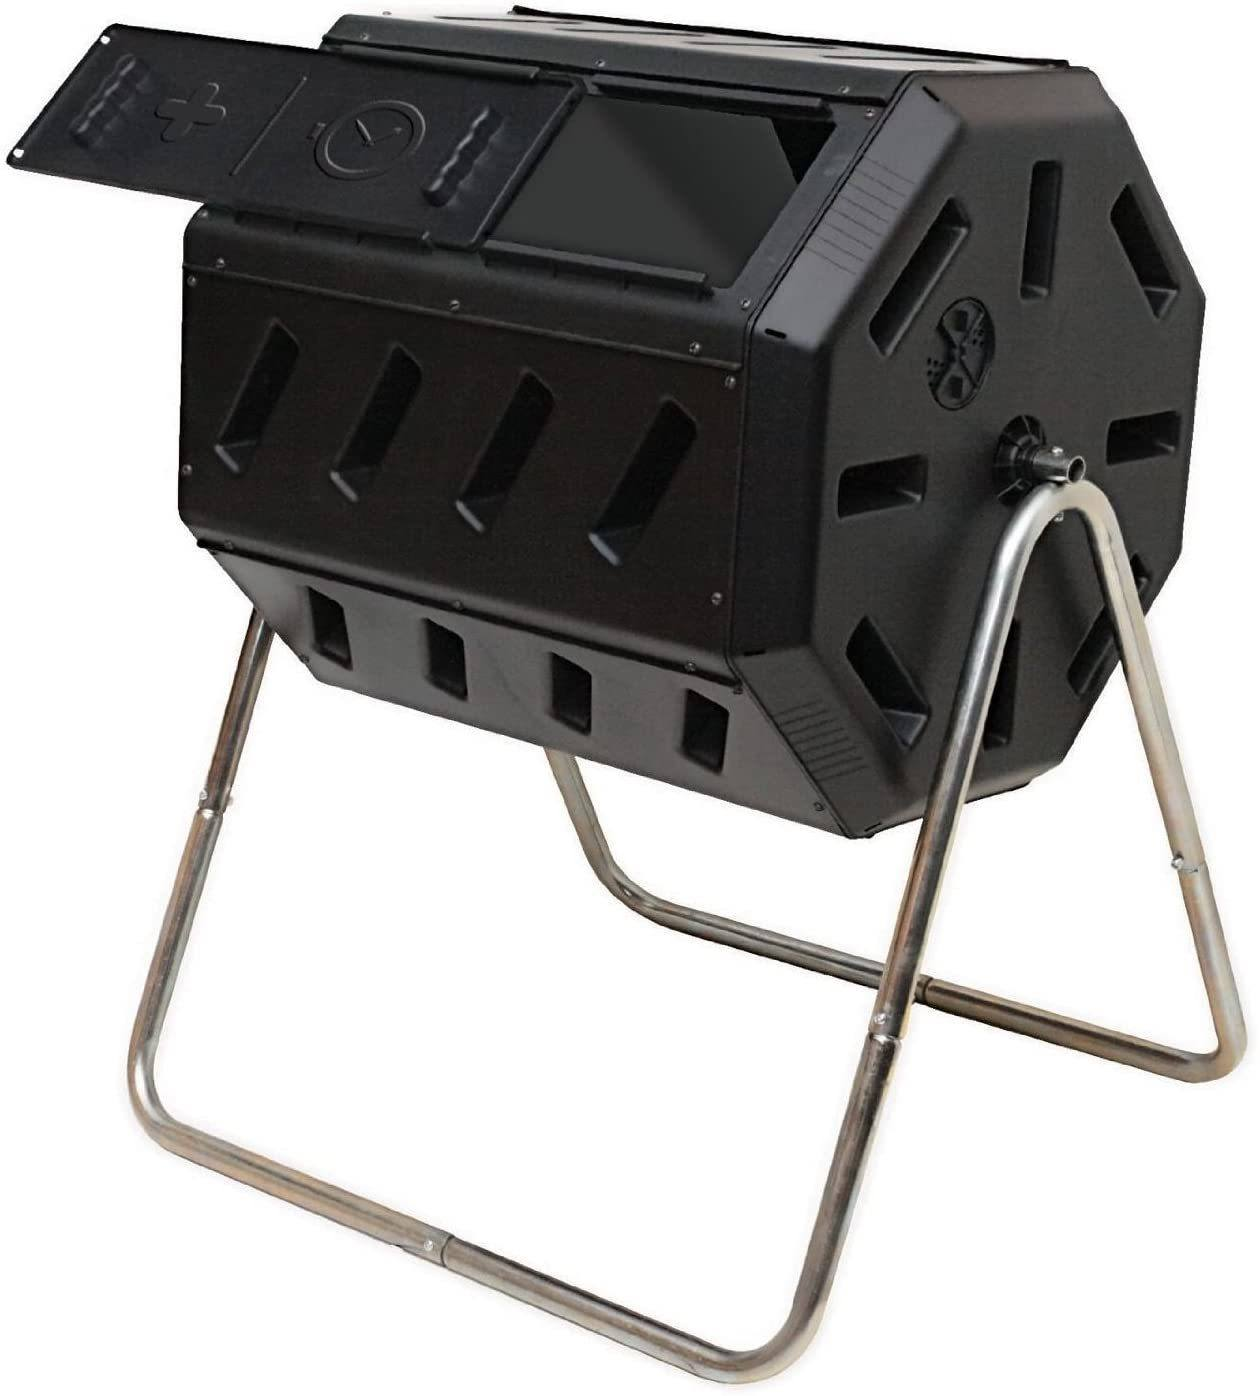 fcmp outdoor tumbling composter image